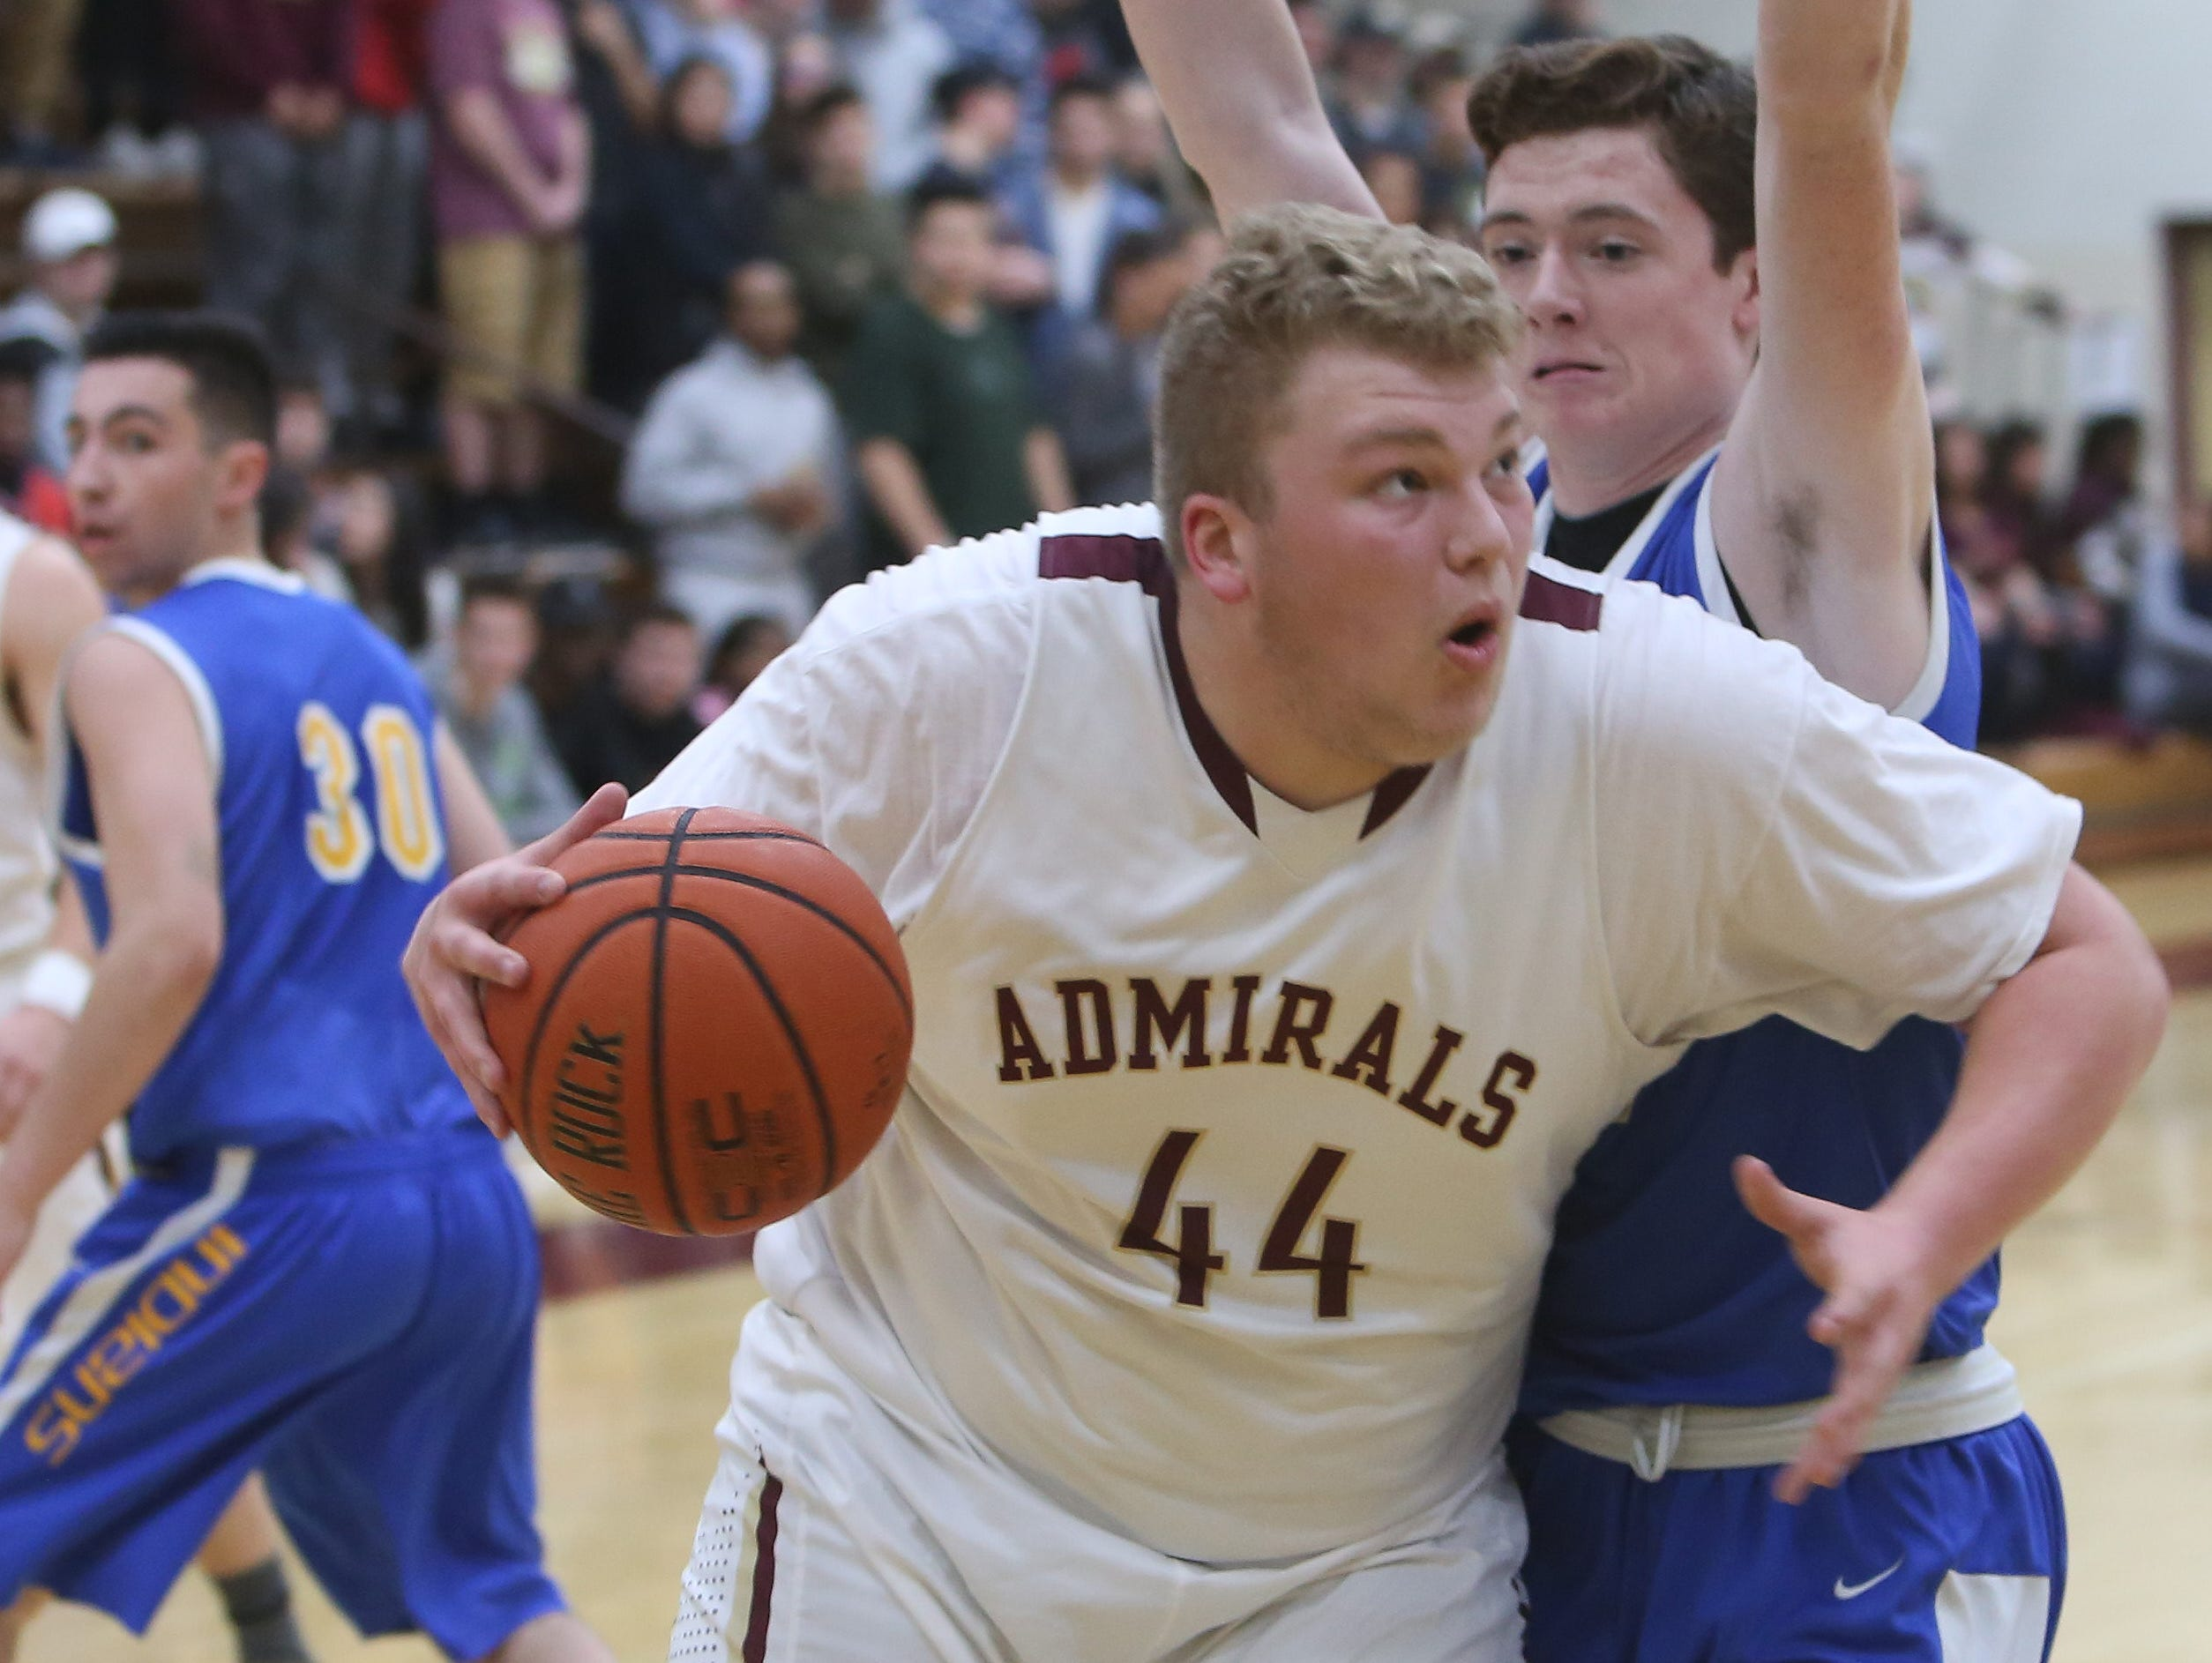 Arlington's Shane Wokzyk (44) drives to the basket in front of Mahopac's Ryan Dugan (23) during a boys basketball game at Arlington High School Jan. 12, 2017.